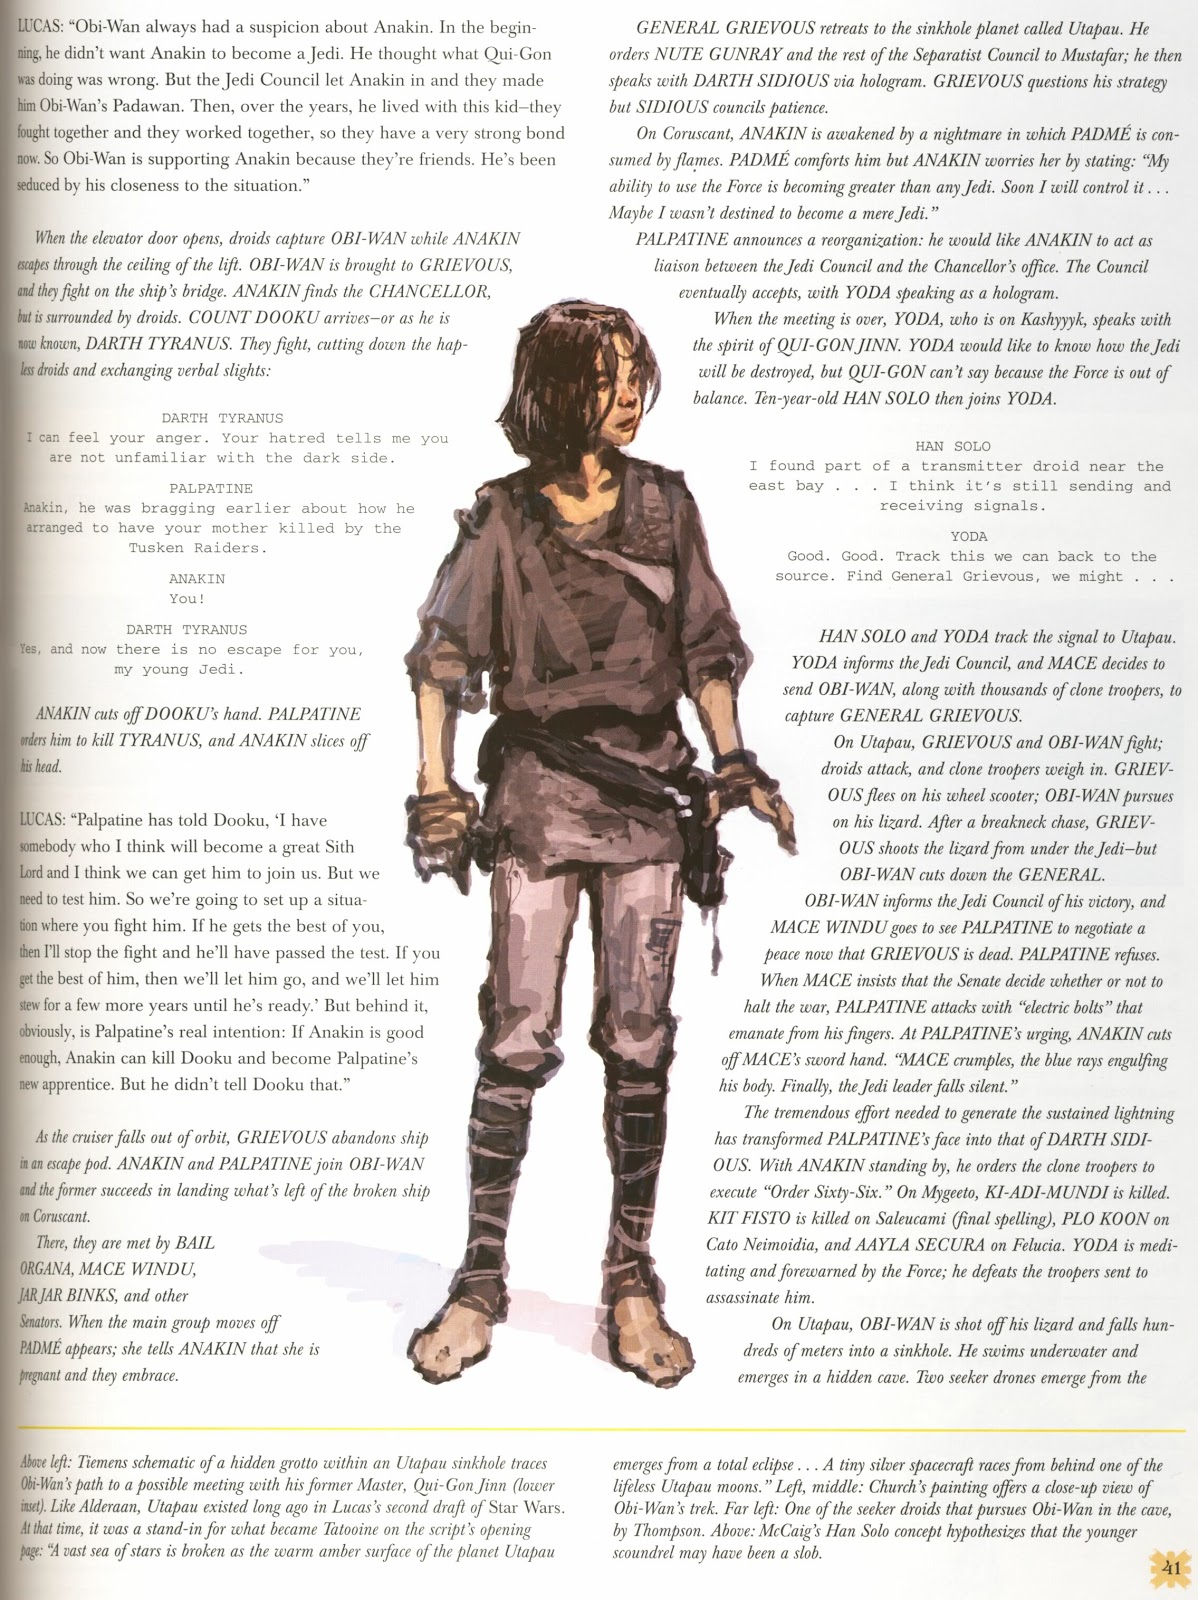 Young Han Solo Star Wars Episode Iii Revenge Of The Sith Concept Art By Iain Mccaig Rar Writes